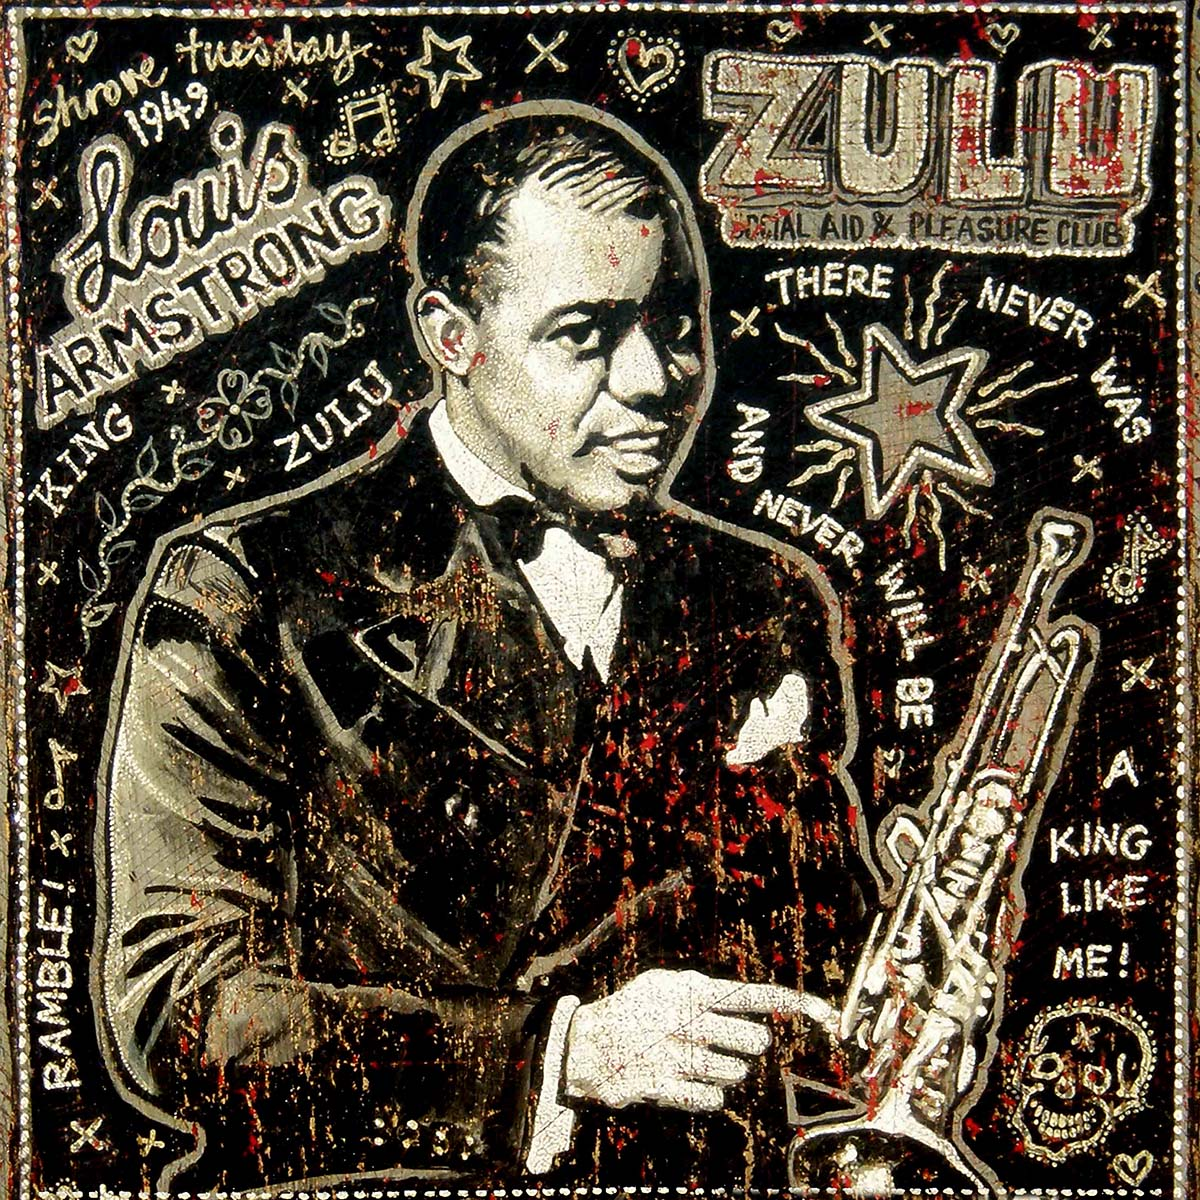 Louis Armstrong - Jon Langford - Yard Dog Art